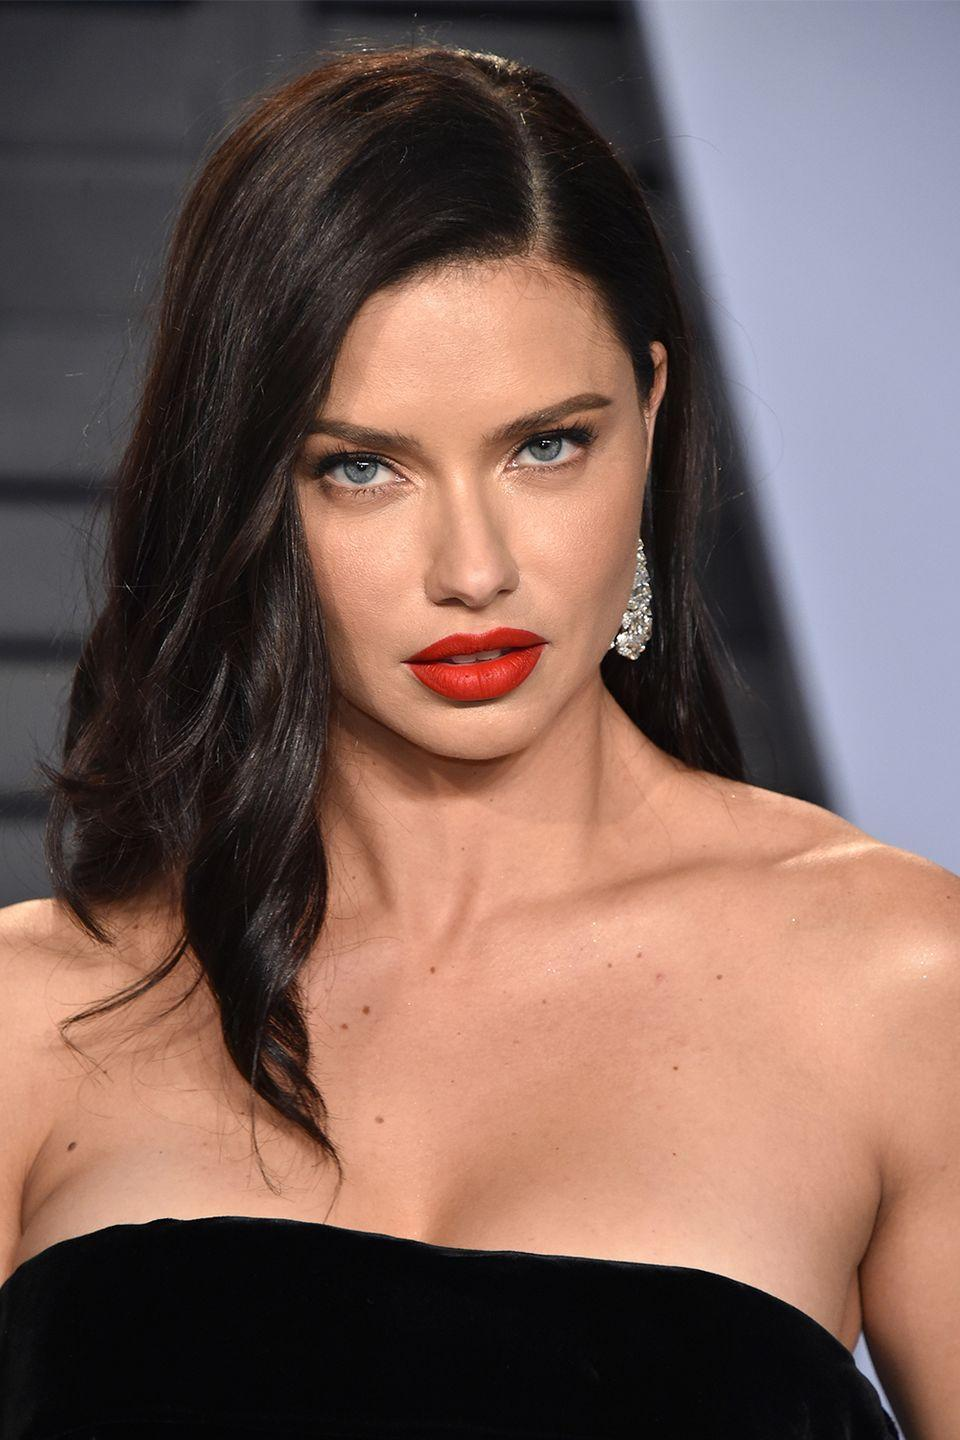 """<p>The Victoria's Secret Angel opened up to <em><a href=""""https://www.gq.com/story/adriana-lima-virgin-underwear-model"""" rel=""""nofollow noopener"""" target=""""_blank"""" data-ylk=""""slk:GQ"""" class=""""link rapid-noclick-resp"""">GQ</a> </em>in 2006 about why she was waiting. """"Sex is for after marriage,"""" adding that her boyfriends """"have to respect that this is my choice."""" And in Adriana's wise, girl-power words: """"If there's no respect, that means they don't want me."""" </p><p>At the time, she was dating NBA star Marko Jarić, whom she married in 2009. Sadly, the two are divorced now. <br></p>"""